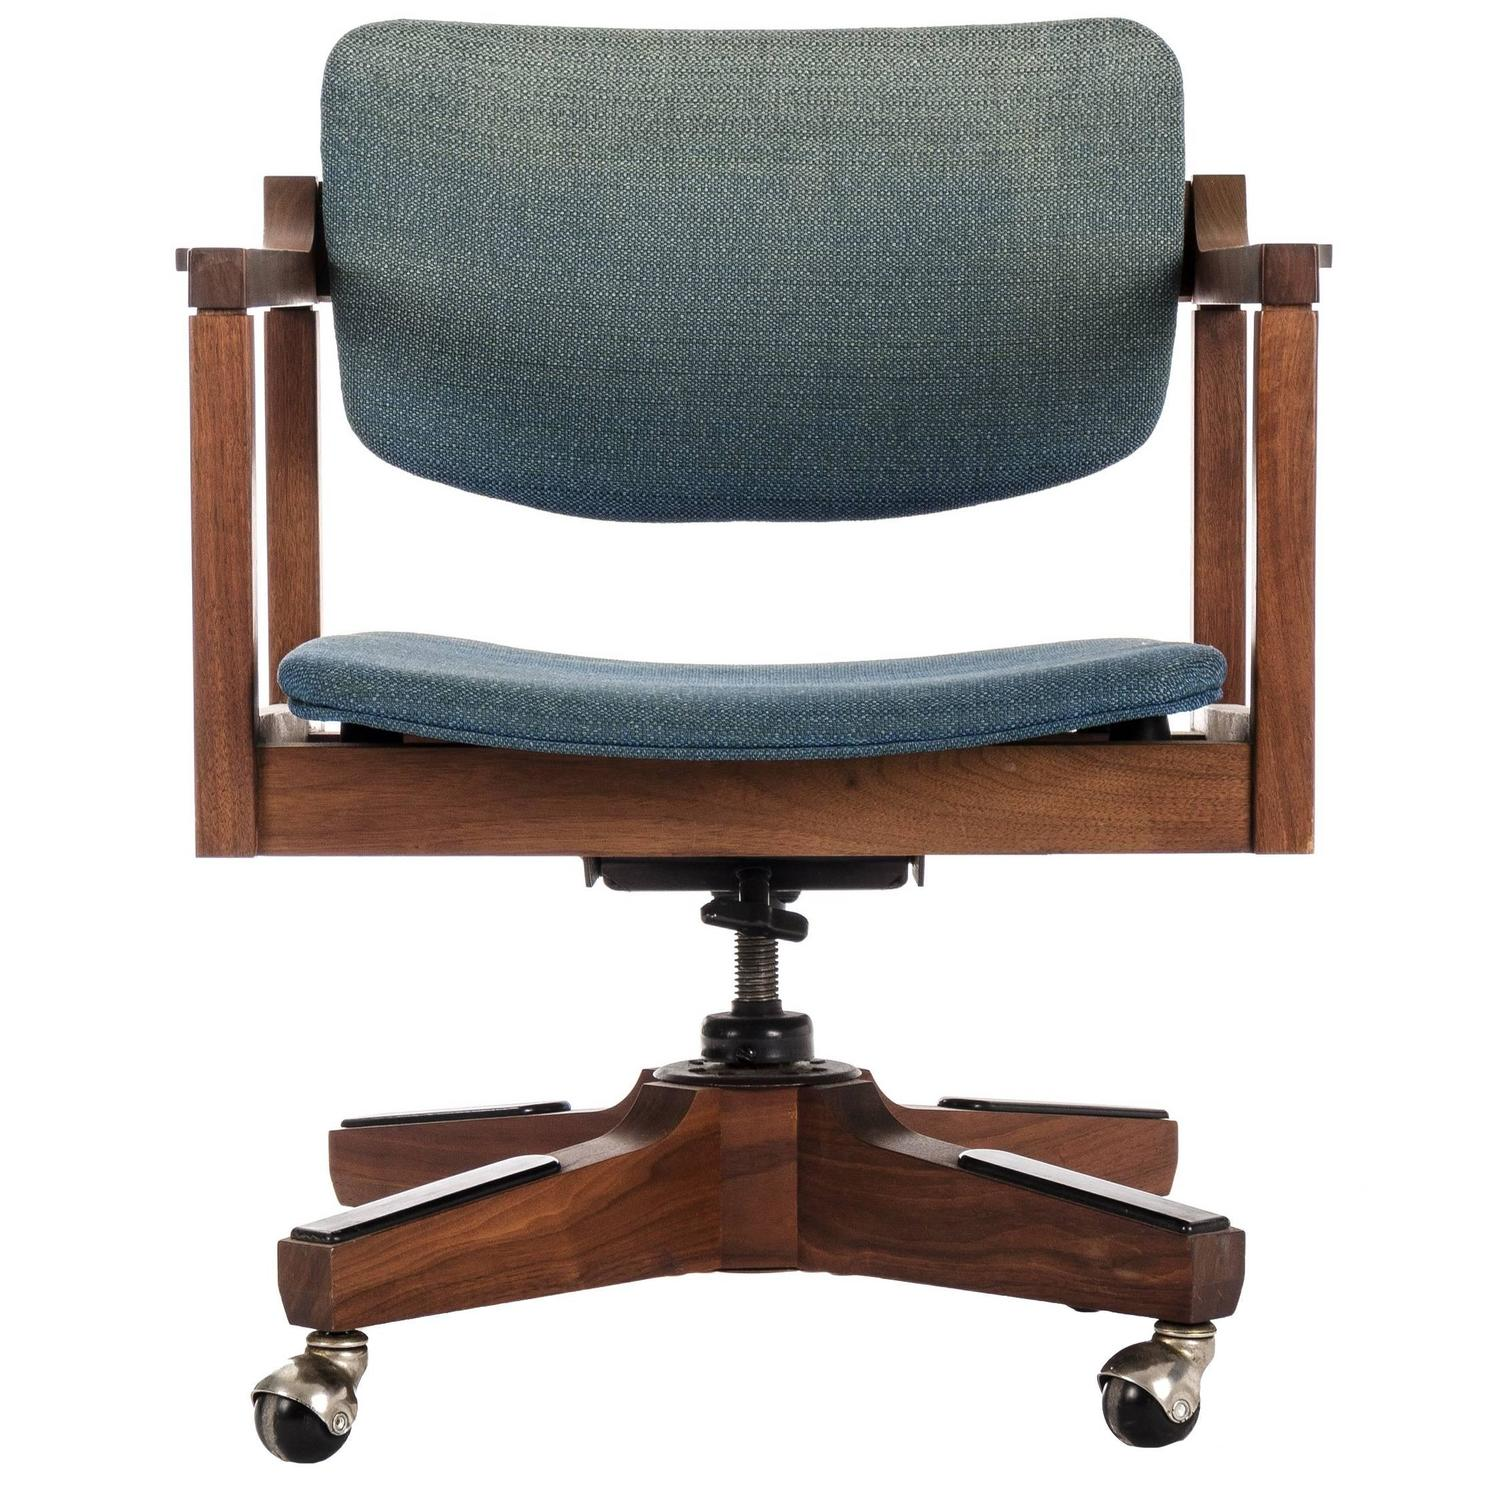 Mid Century Modernist High Back Or Desk Chair W New: Danish Modern Office Chair By Marden For Sale At 1stdibs